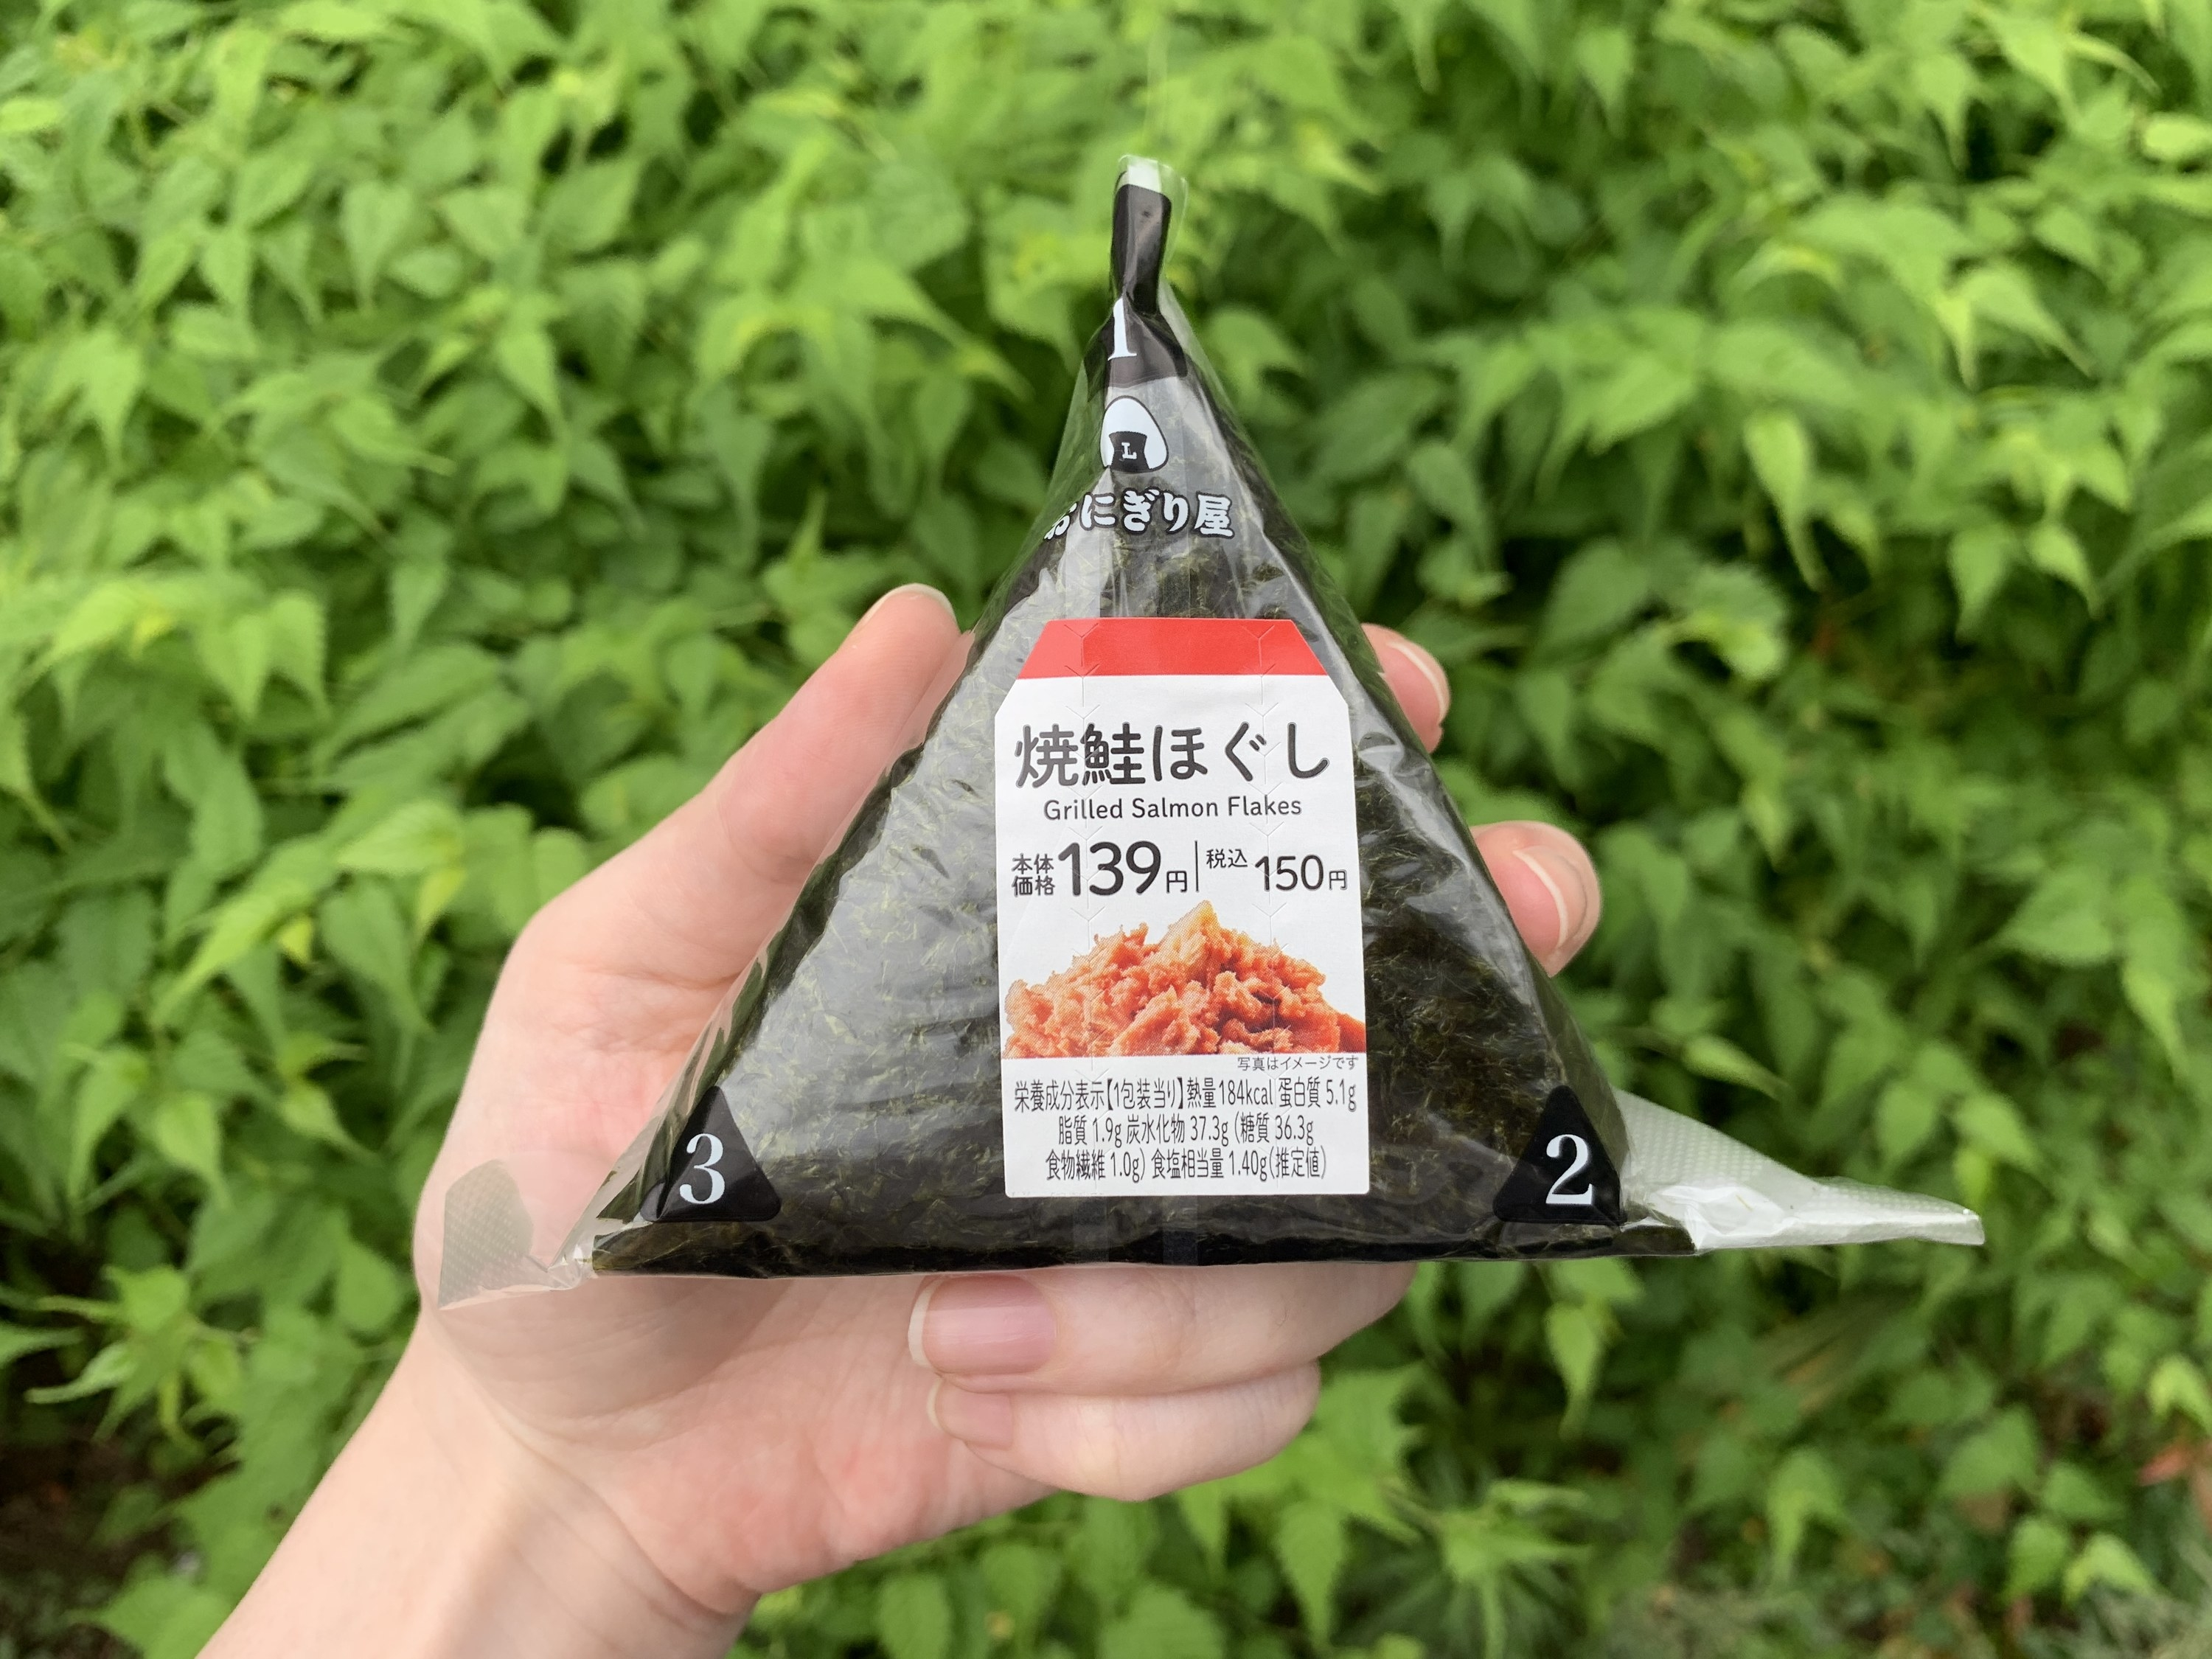 A hand holding a packaged onigiri